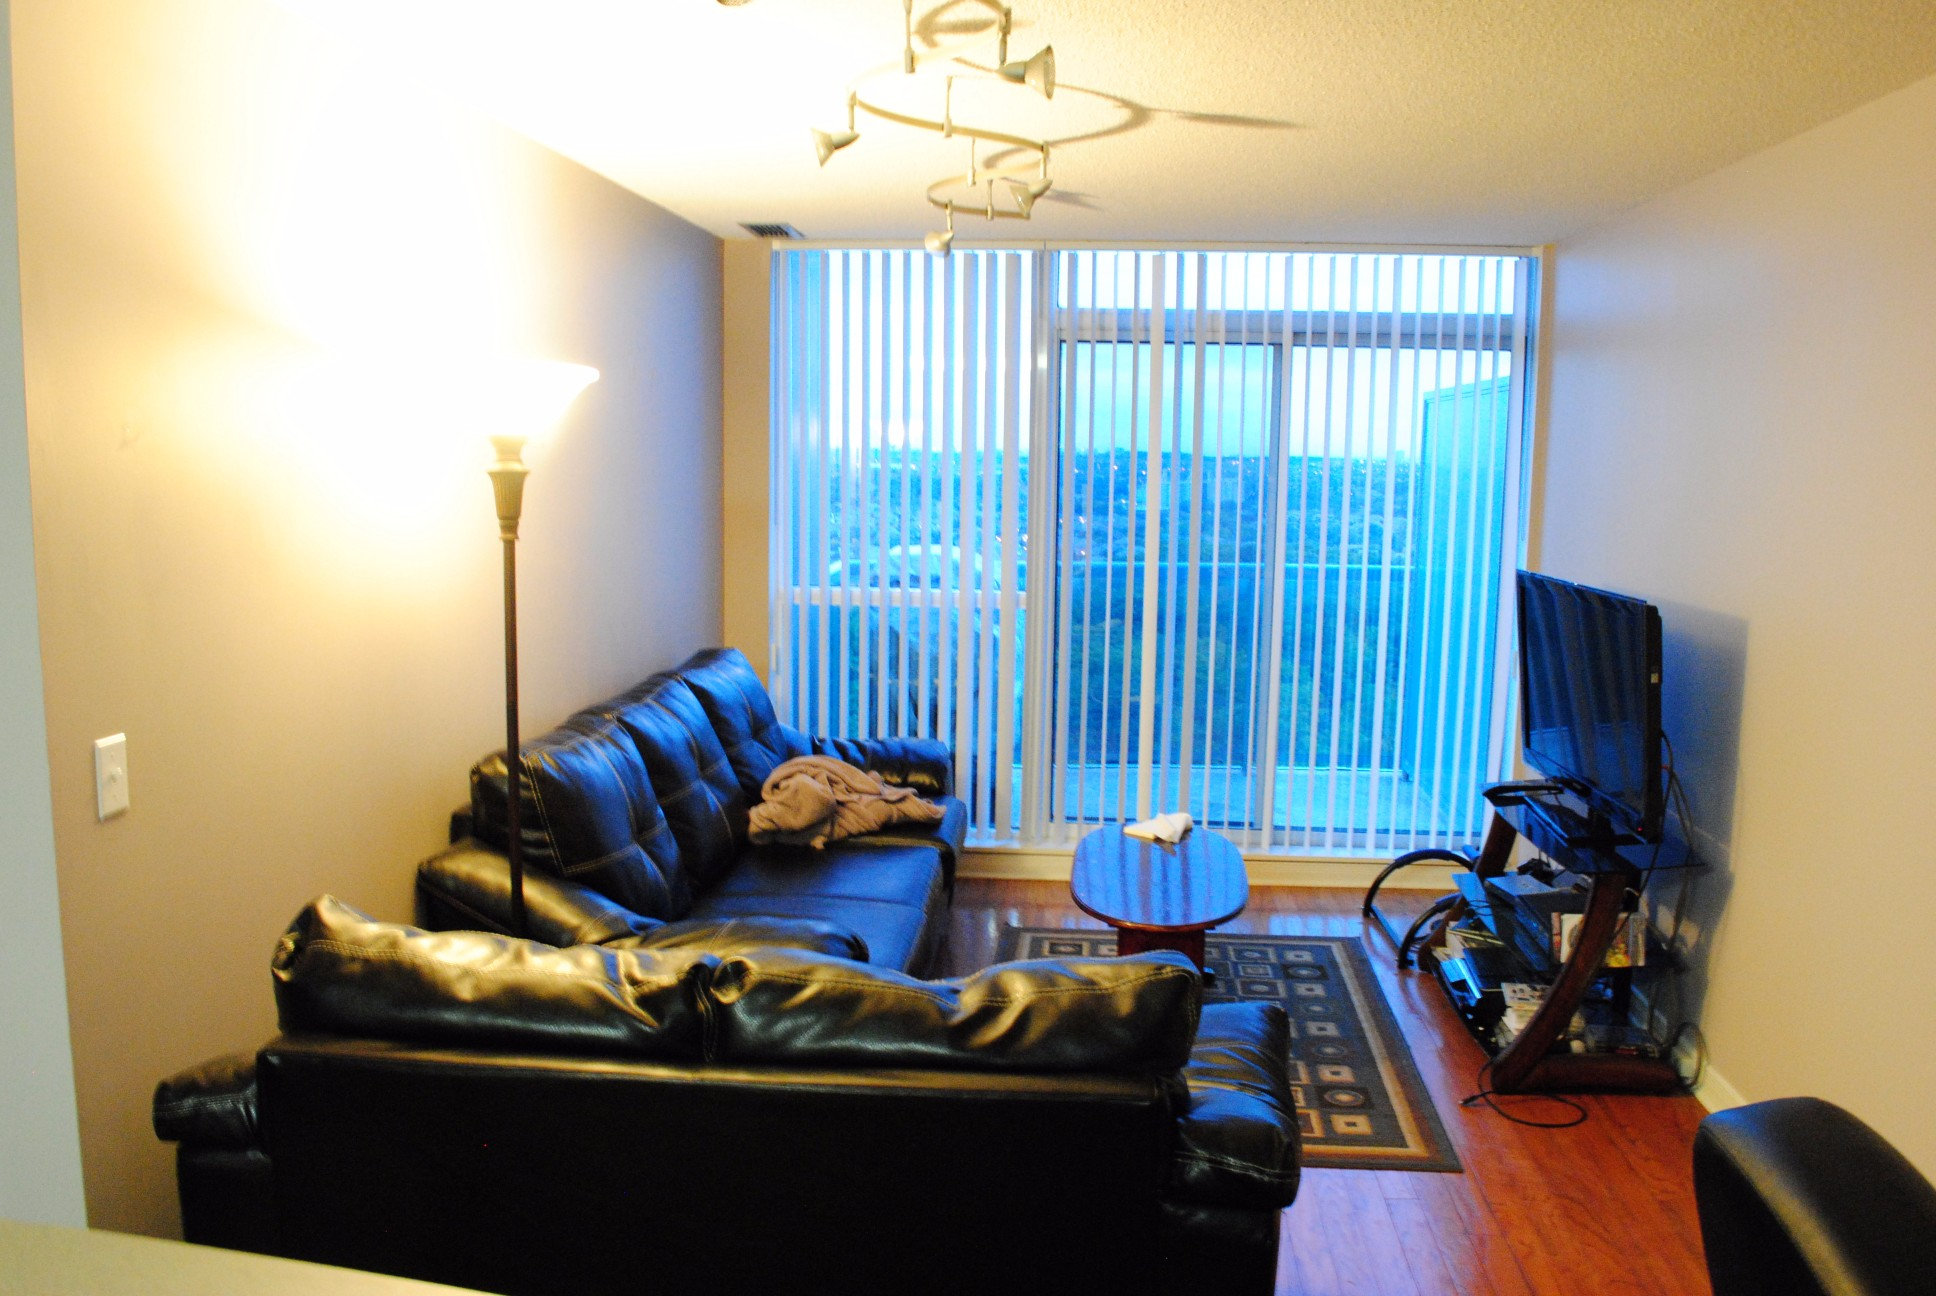 2545 Erin Centre Blvd,Mississauga,1 Bedroom Bedrooms,1 BathroomBathrooms,Condominium,Erin Centre Blvd,18,1001